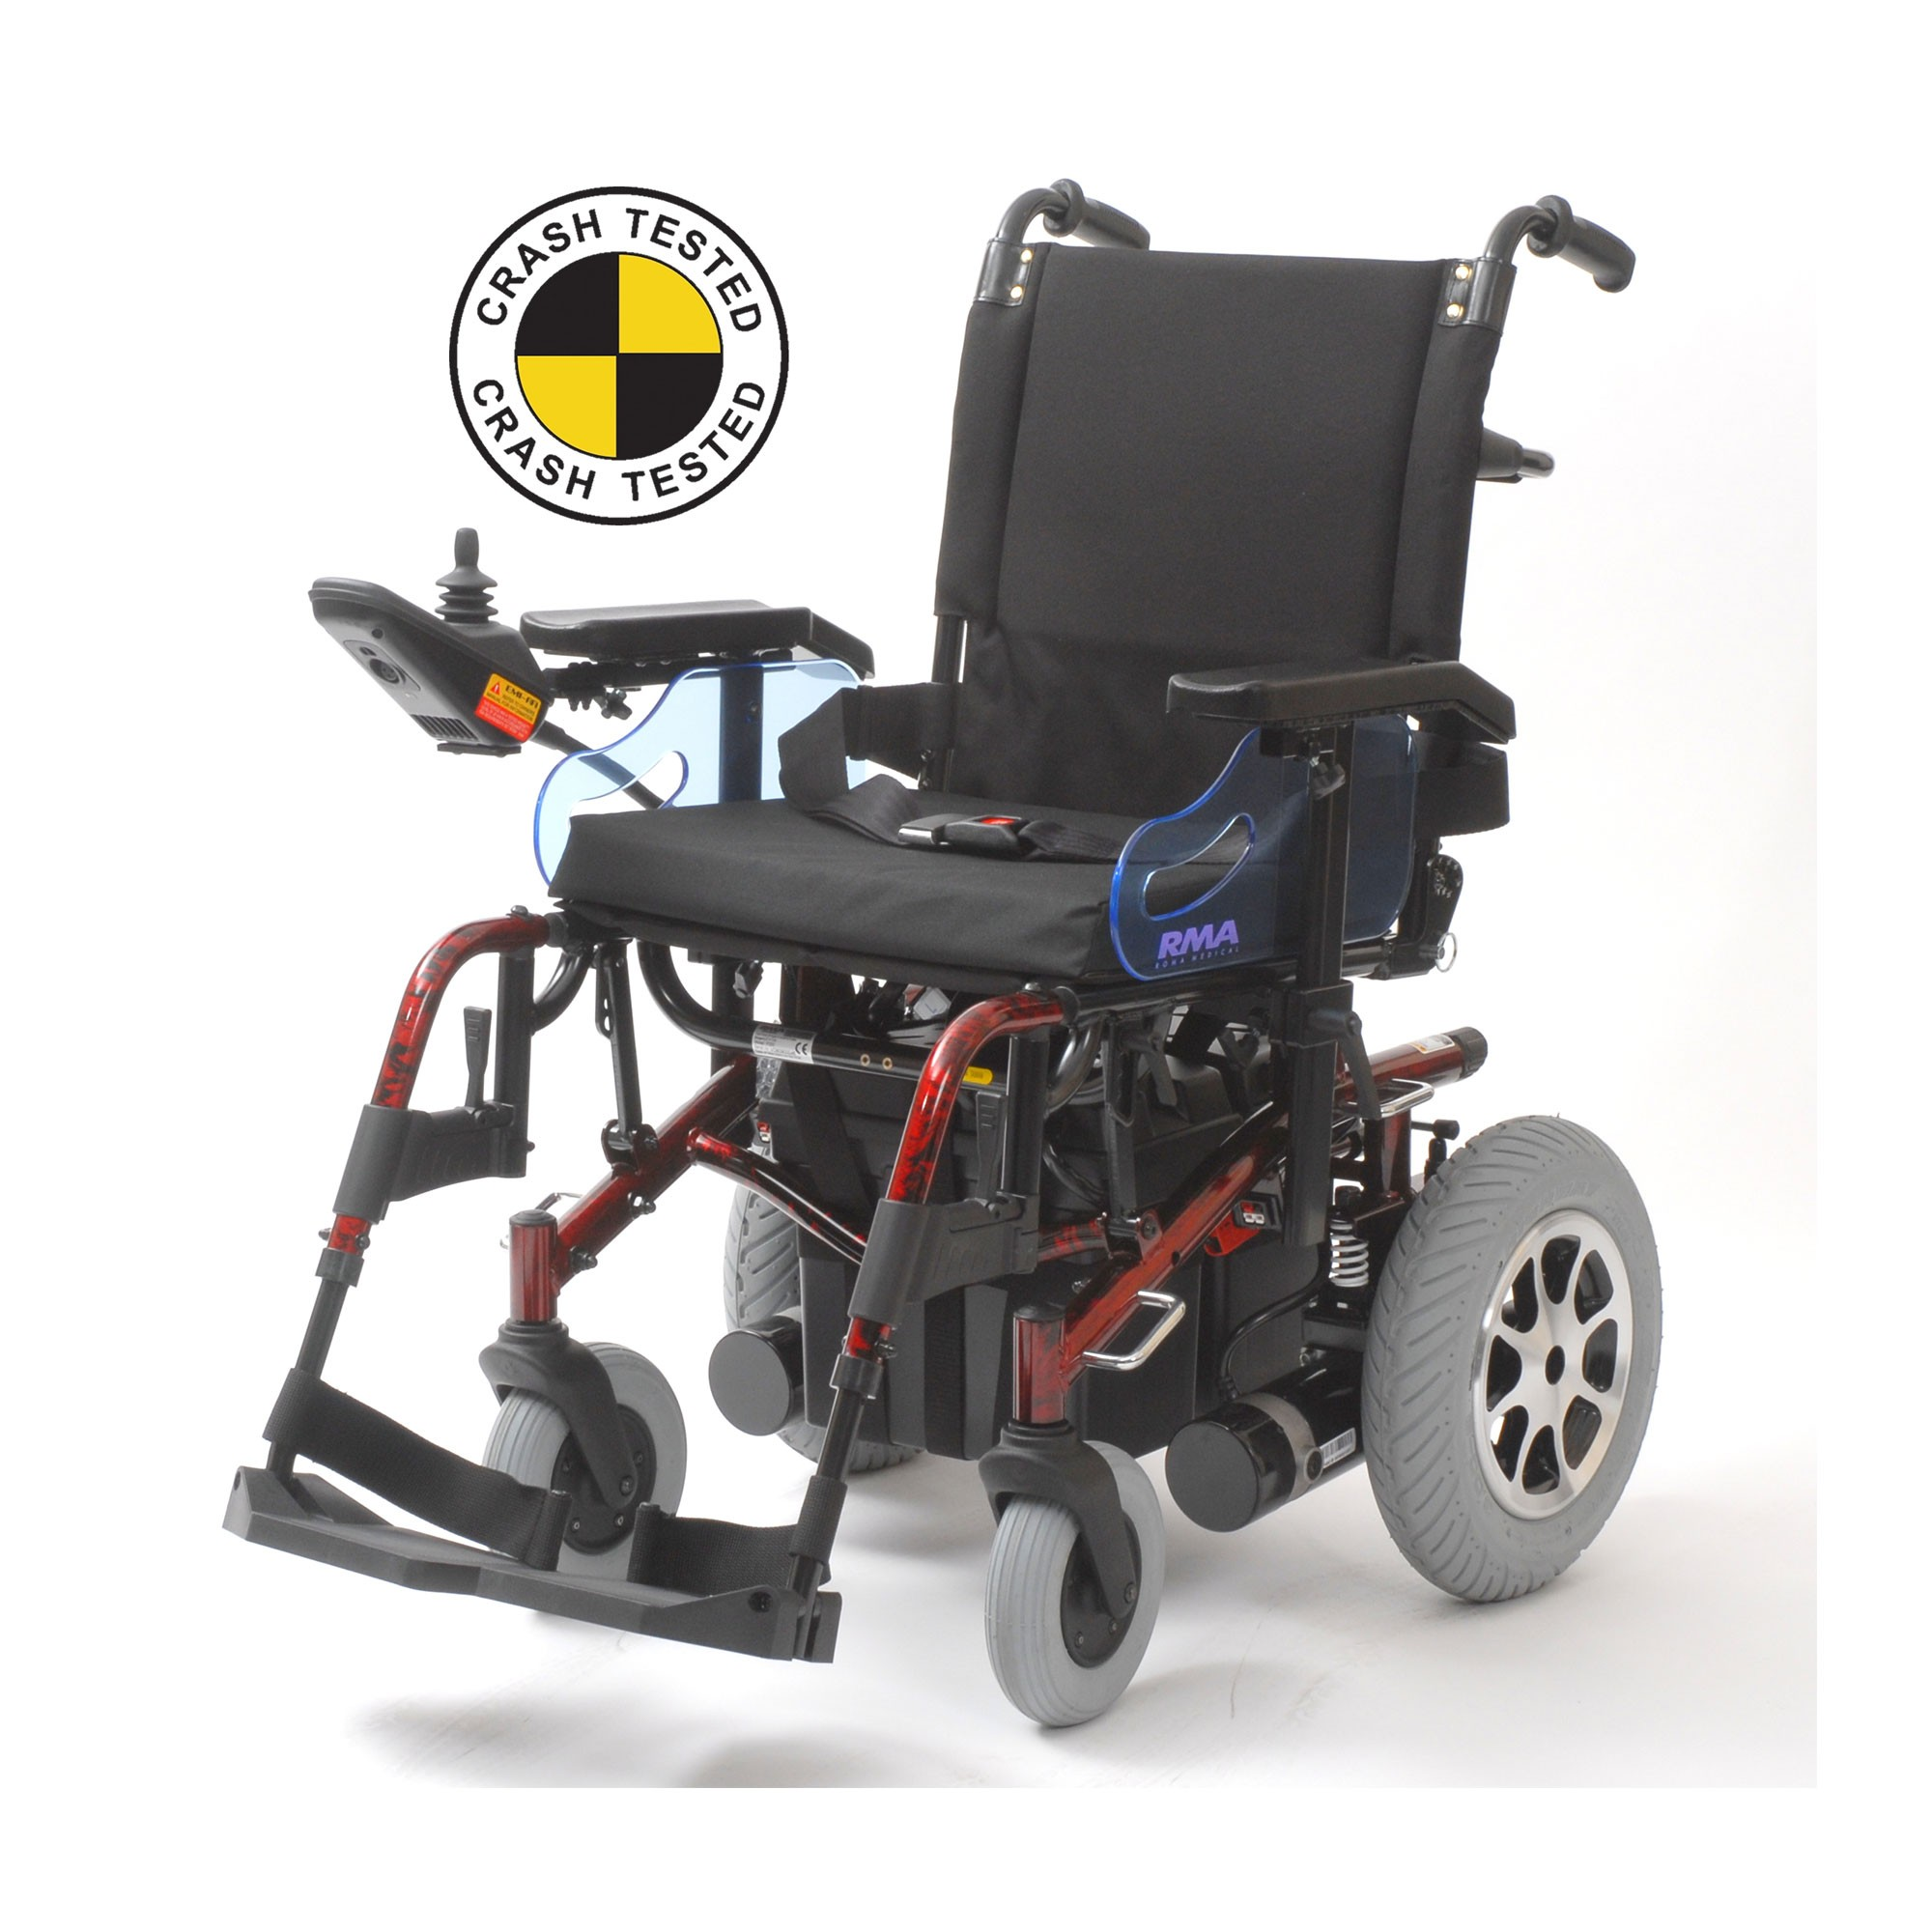 Electric Wheel Chairs Roma Marbella Electric Wheelchair Delvered Next Day For